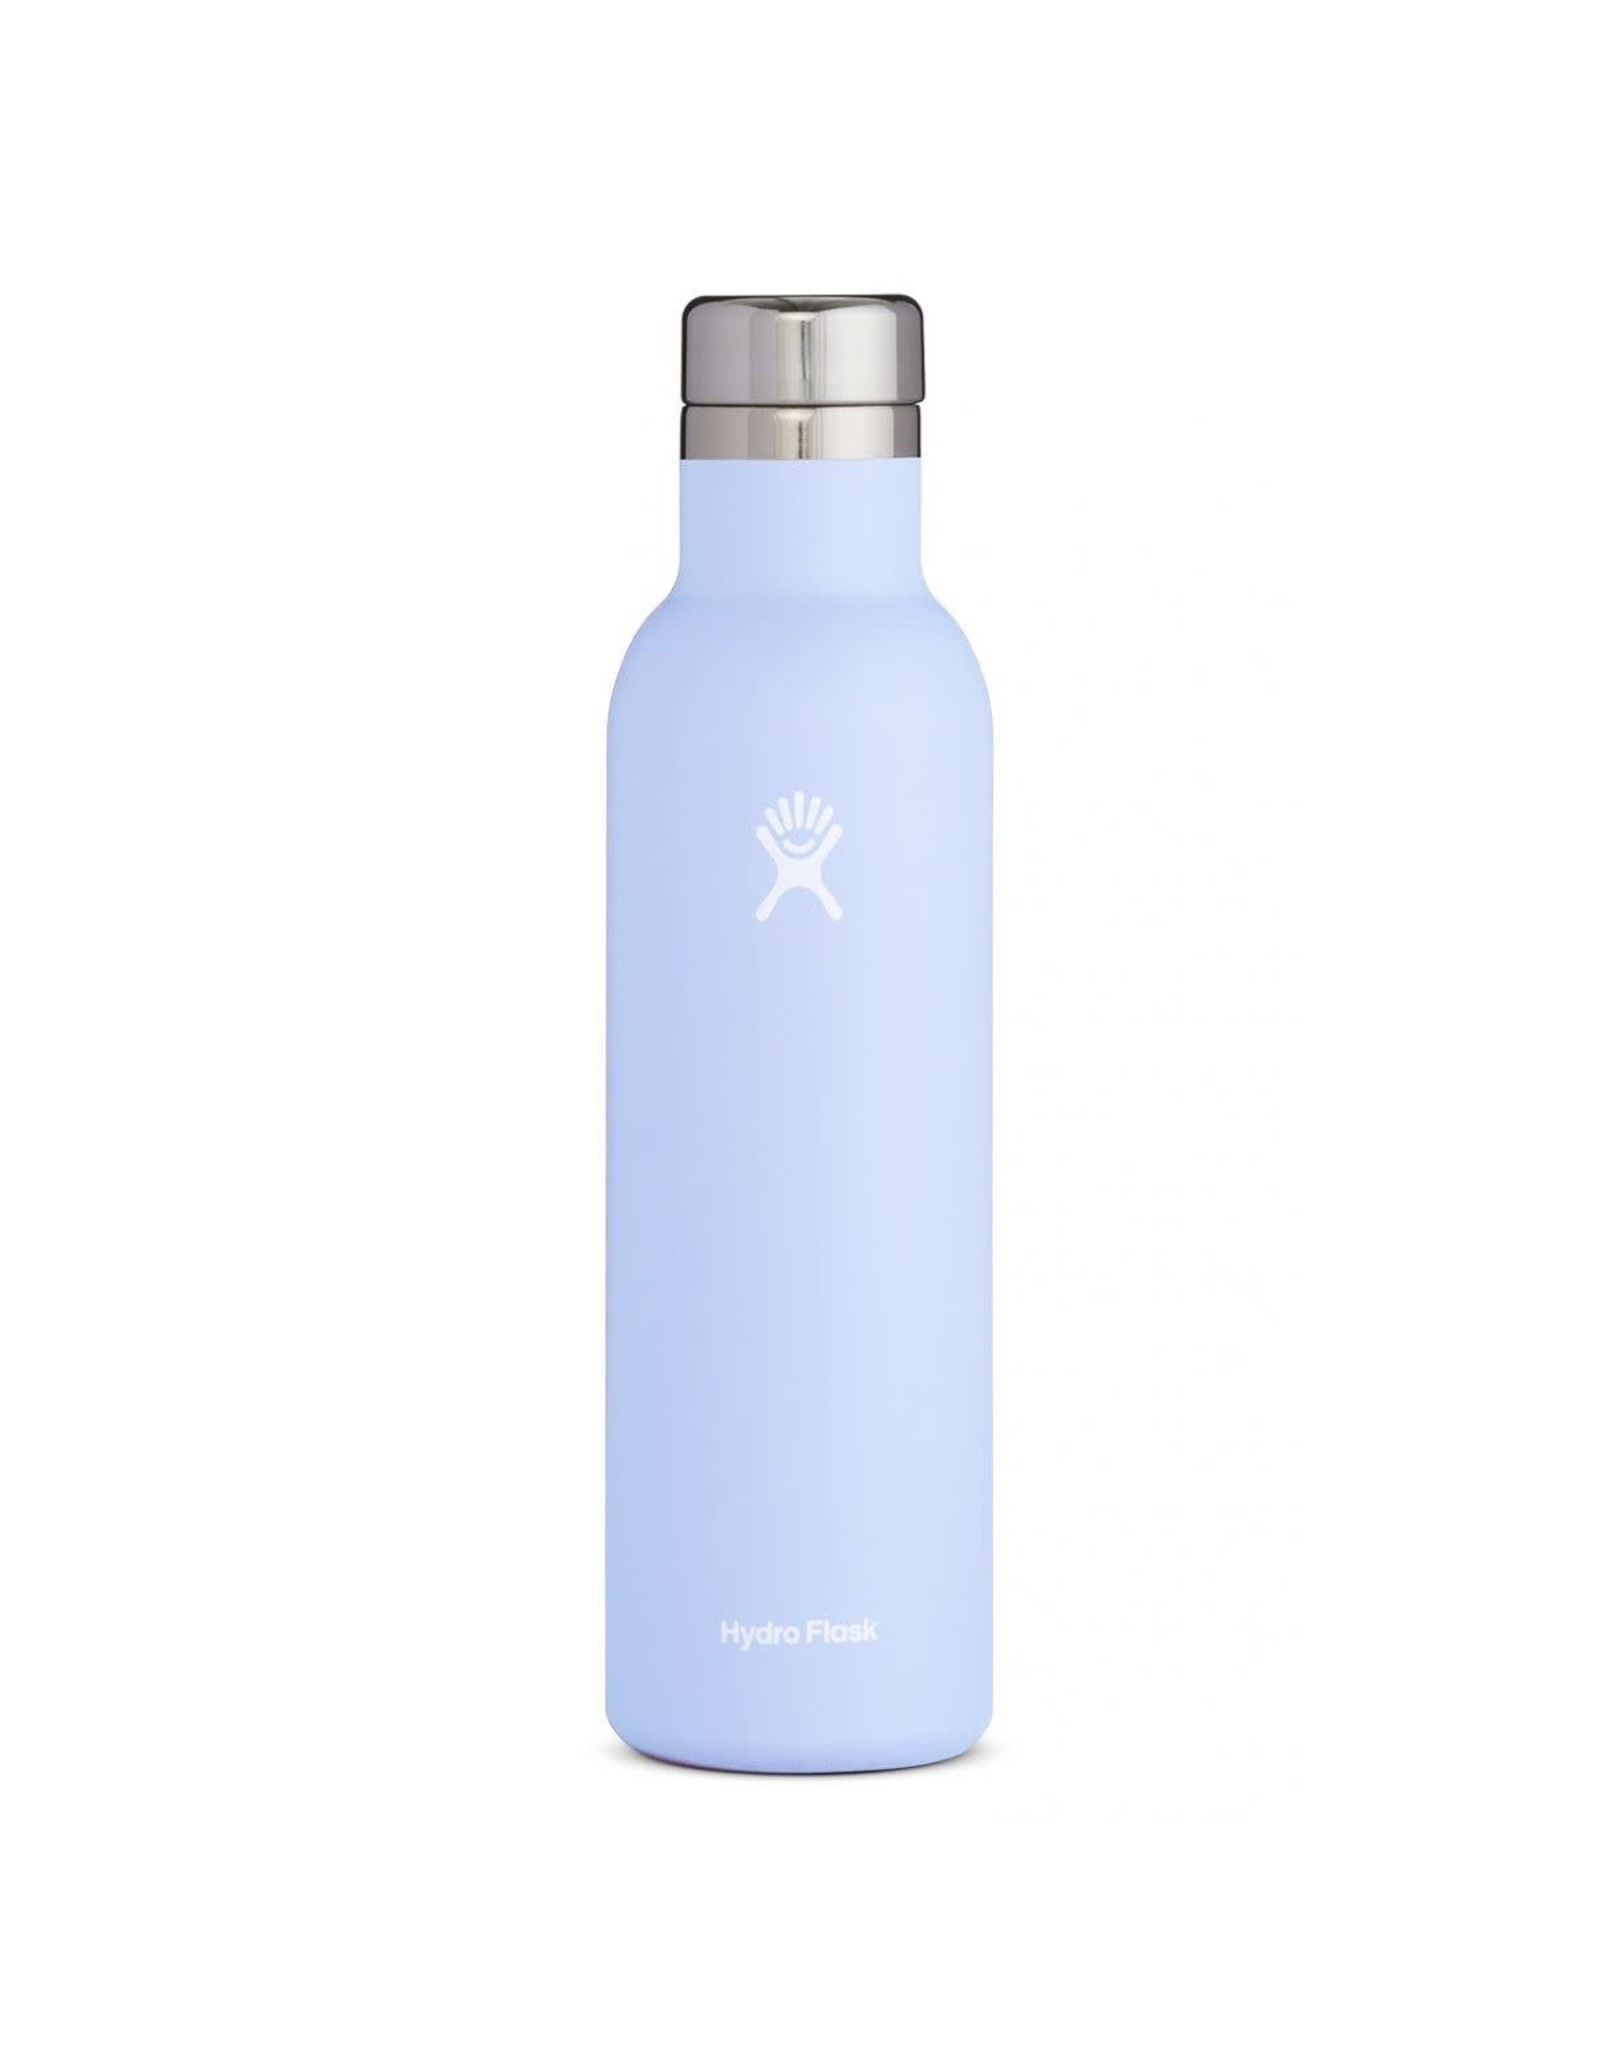 Hydro Flask Hydro Flask Wine Bottle 25oz Fog